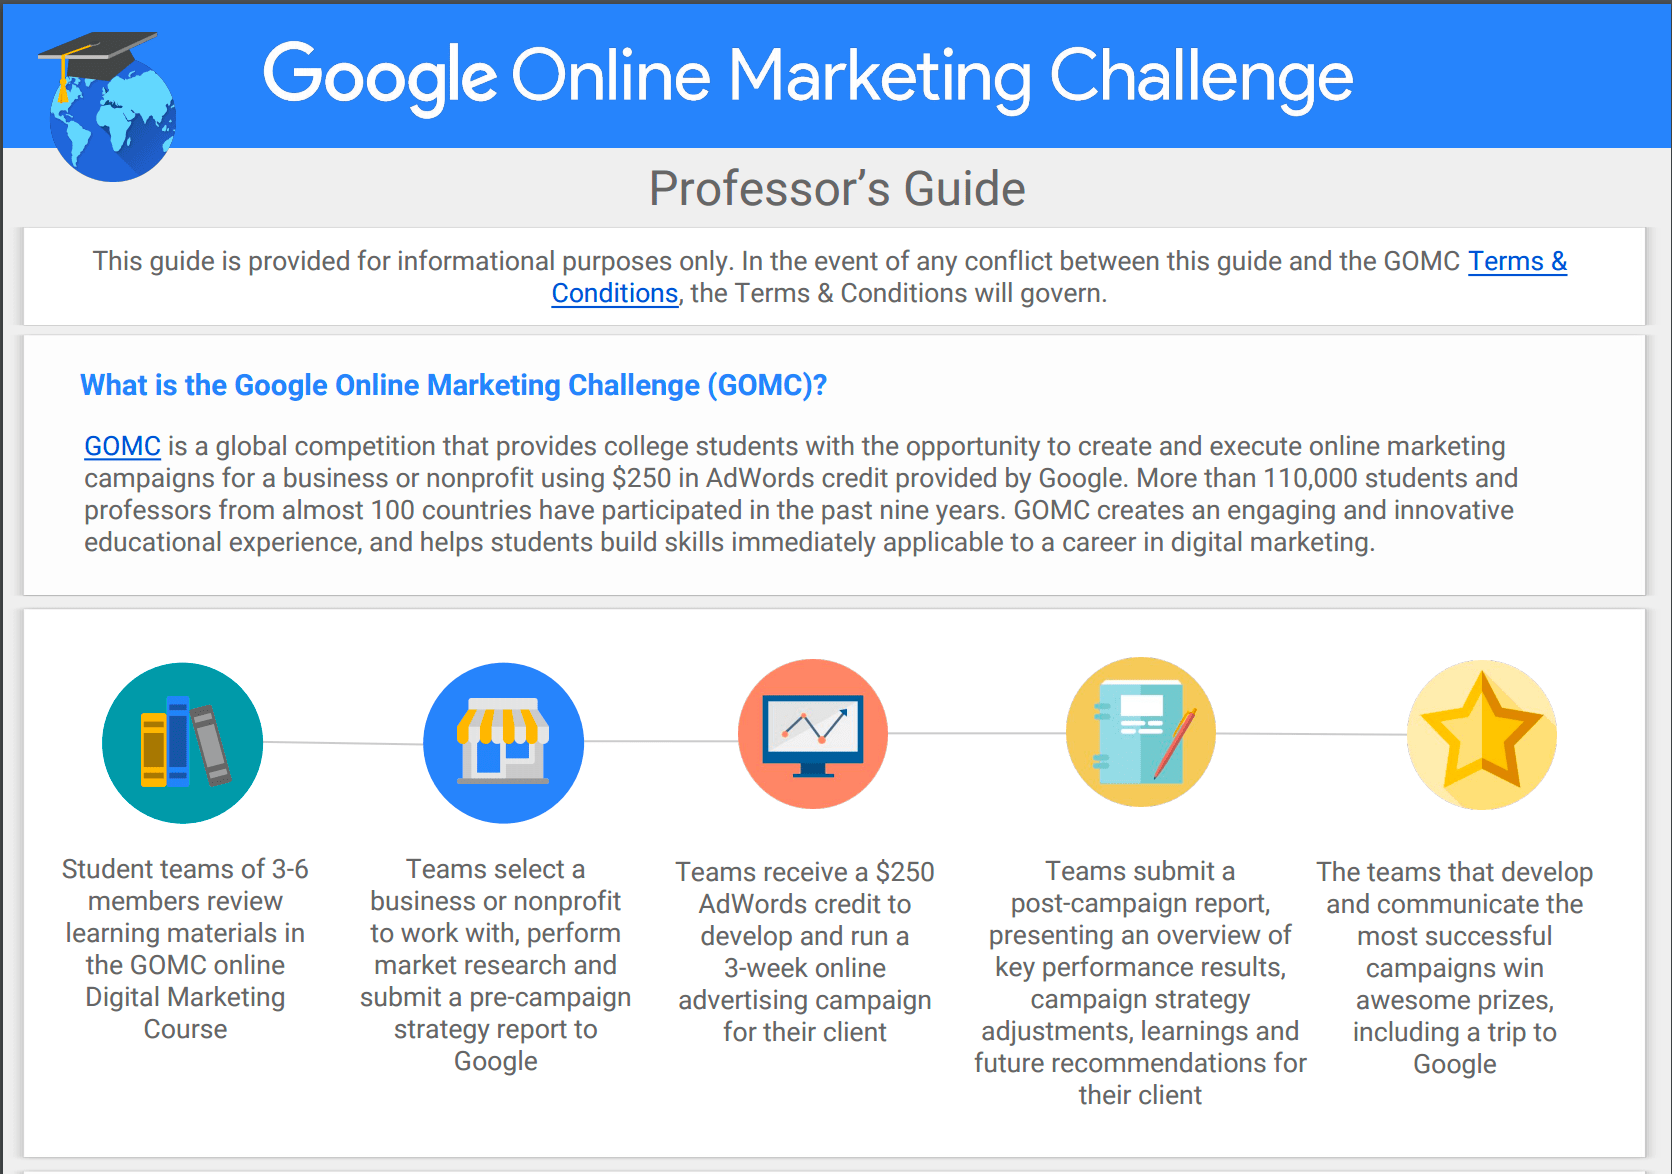 Remix: What Students Learn From Google's Online Marketing Challenge